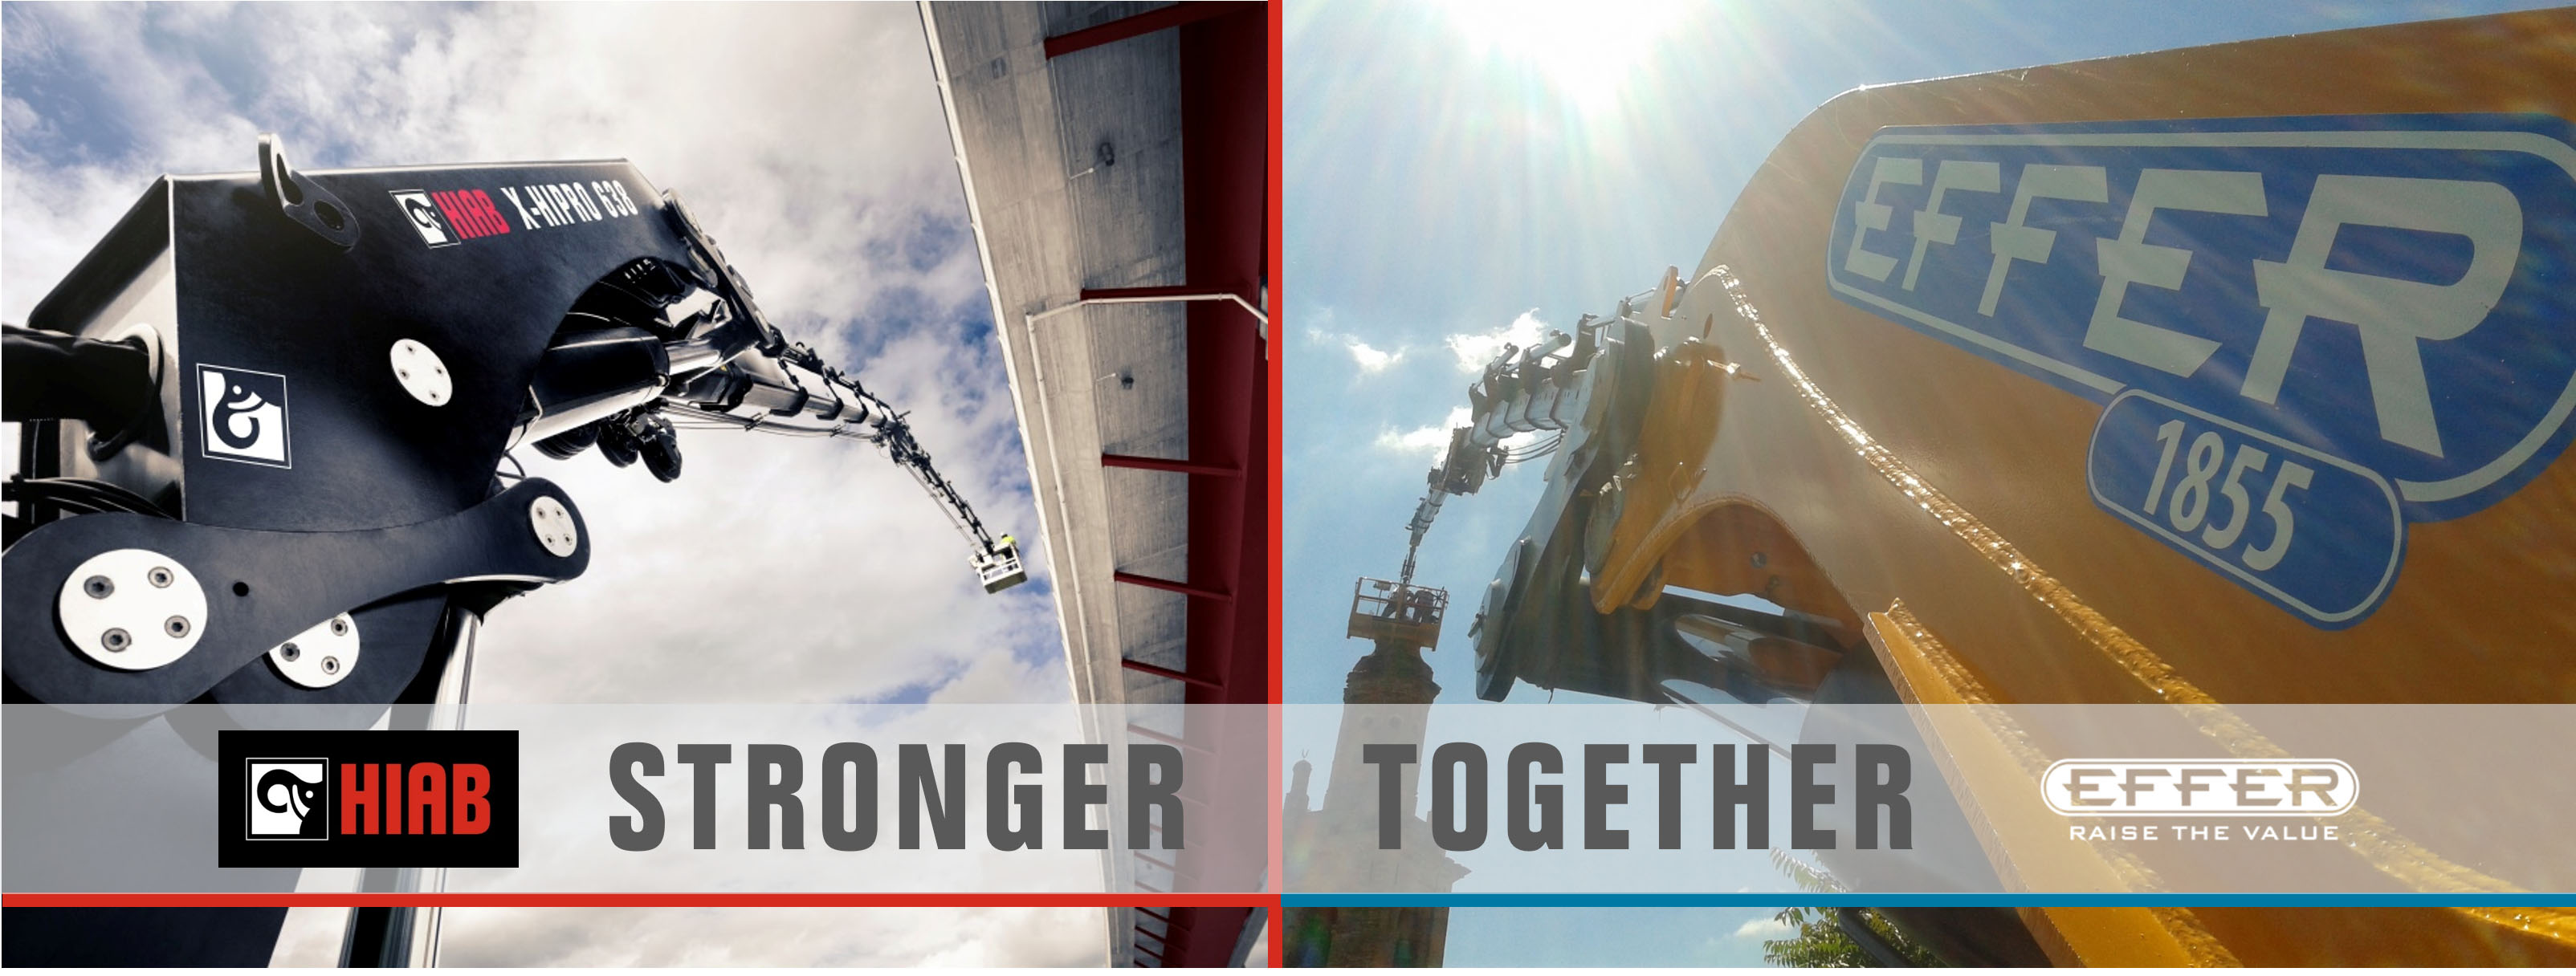 Hiab+Effer_Stronger Together_Signature